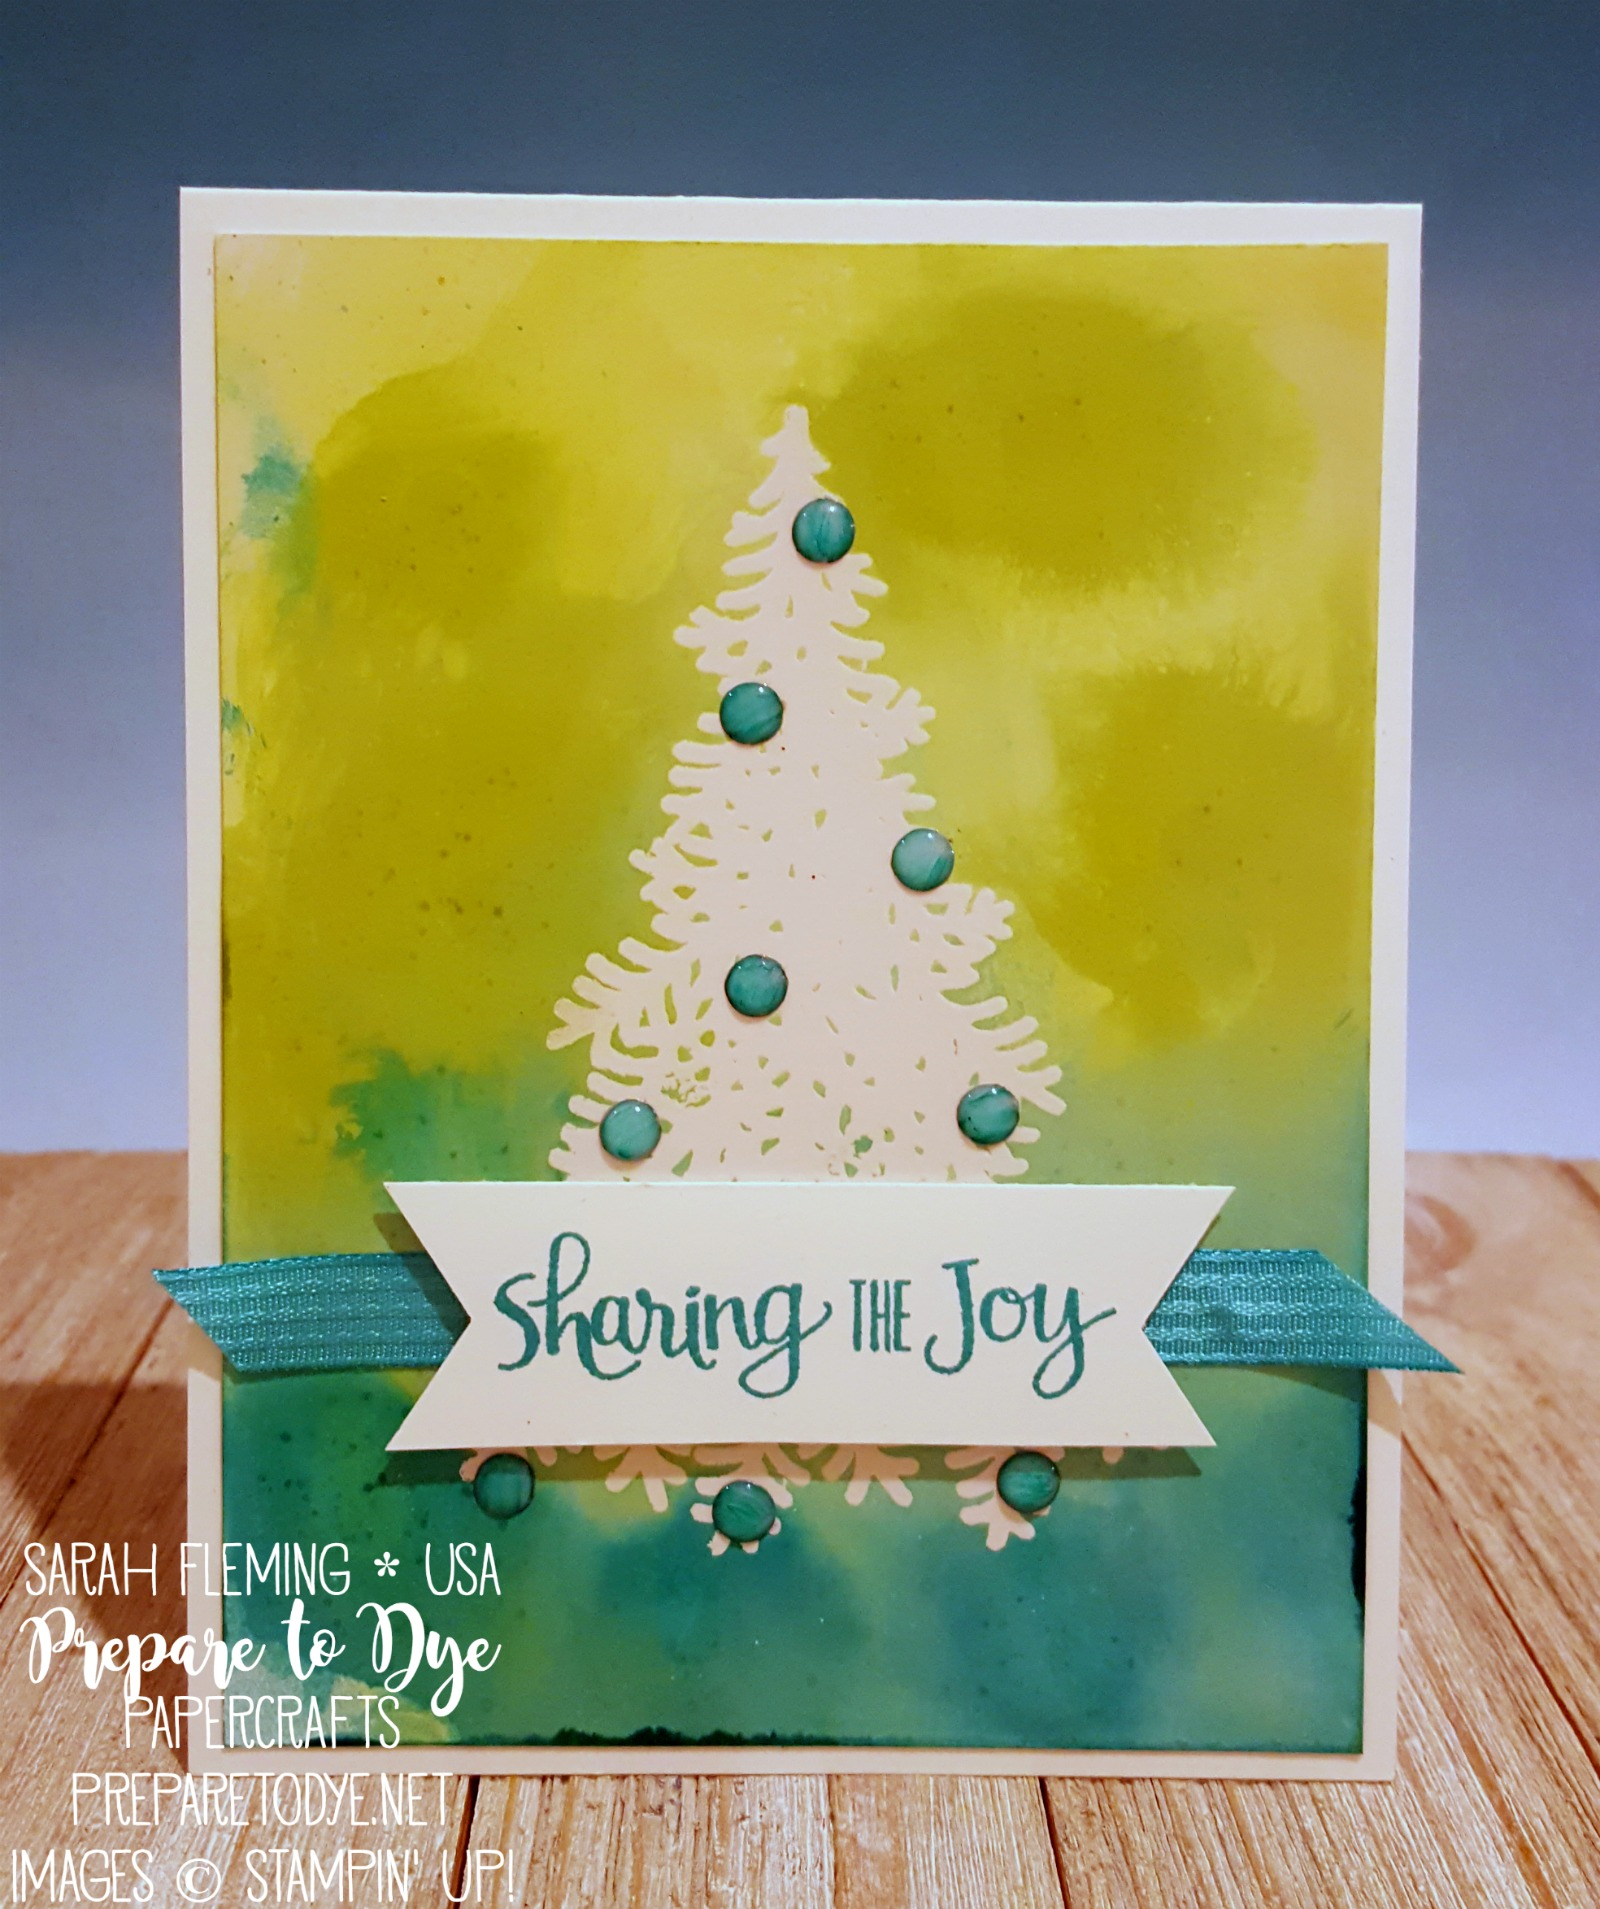 Stampin' Up! Ready for Christmas stamp set with glossy cardstock - Ink, Spray, & Smash technique with Emboss Resist technique - Sarah Fleming - Prepare to Dye Papercrafts - SDBH